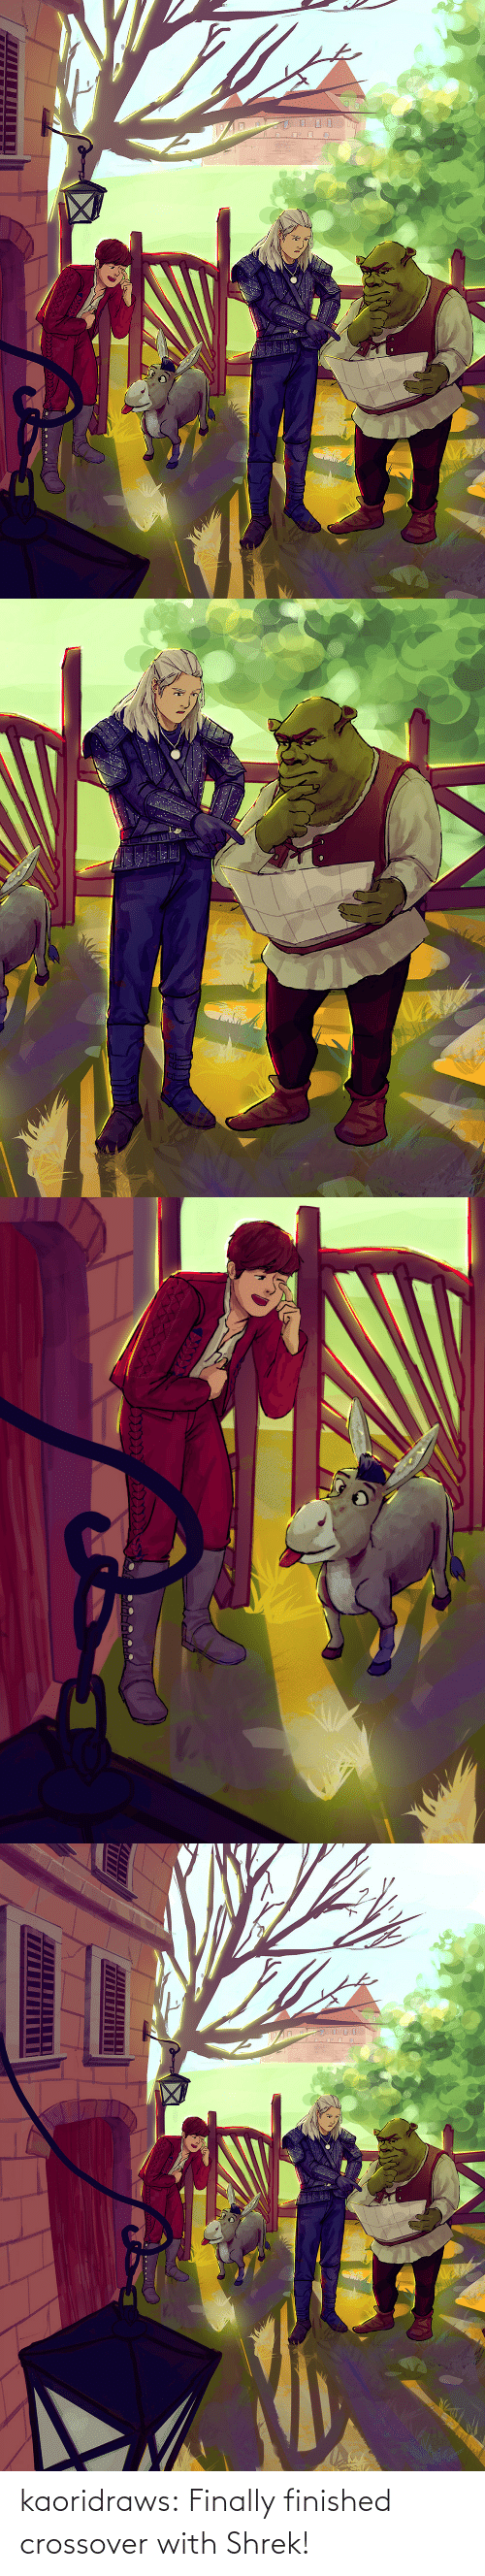 crossover: kaoridraws:  Finally finished crossover with Shrek!